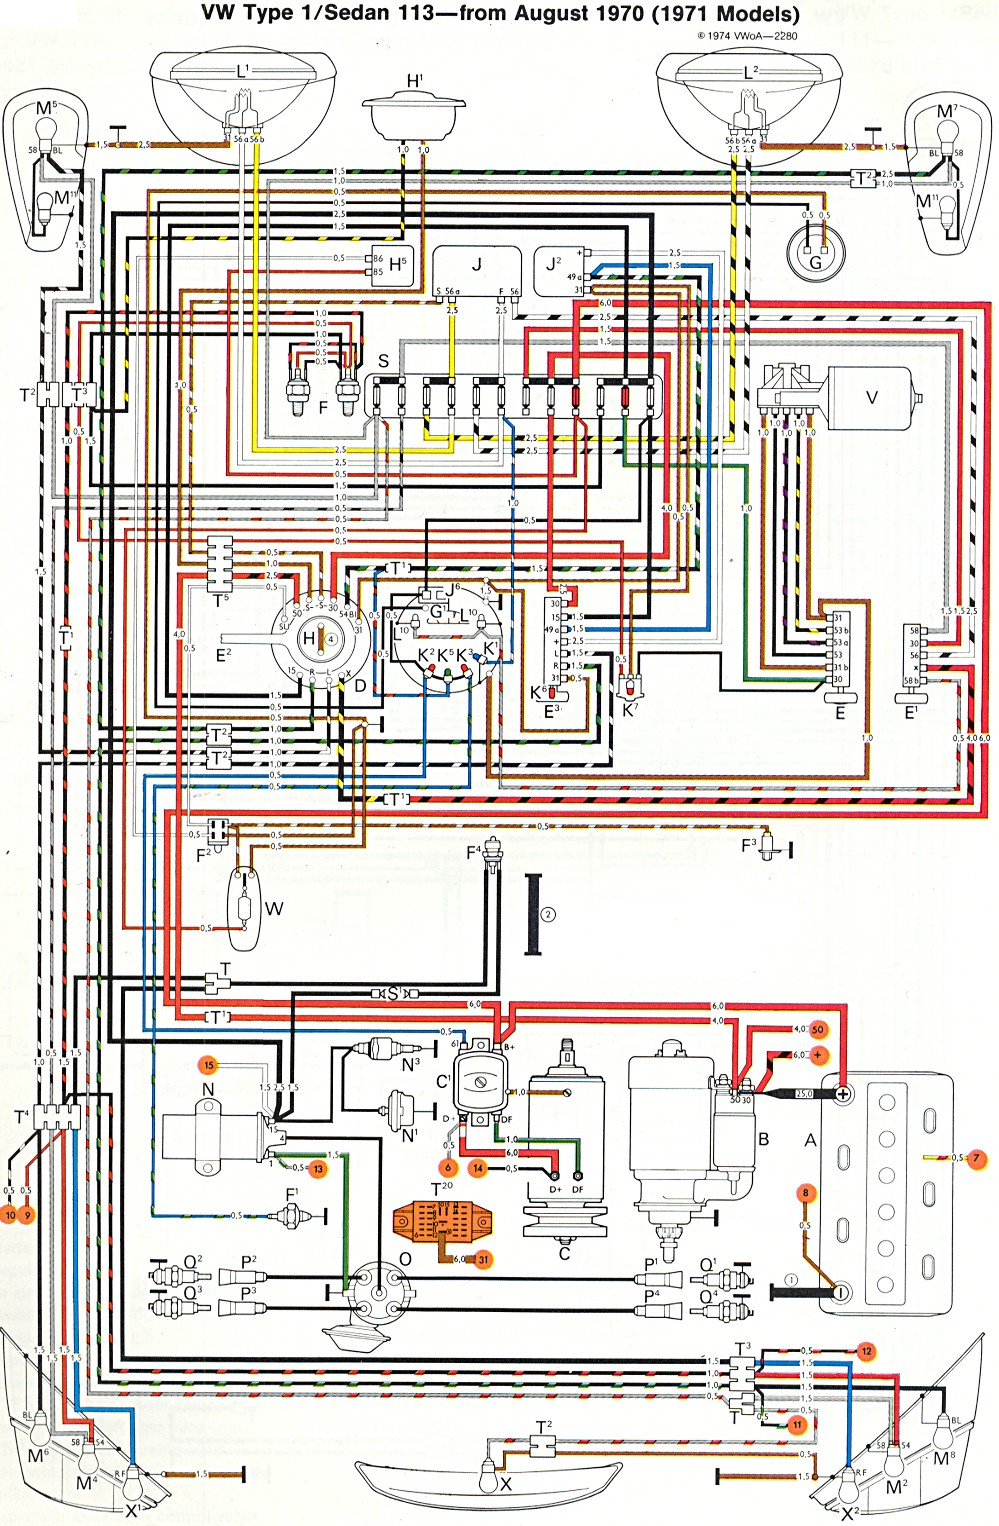 hight resolution of 1971 volkswagen wiring diagram simple wiring diagram 2007 vw passat fuse panel vw 1971 fuse diagram